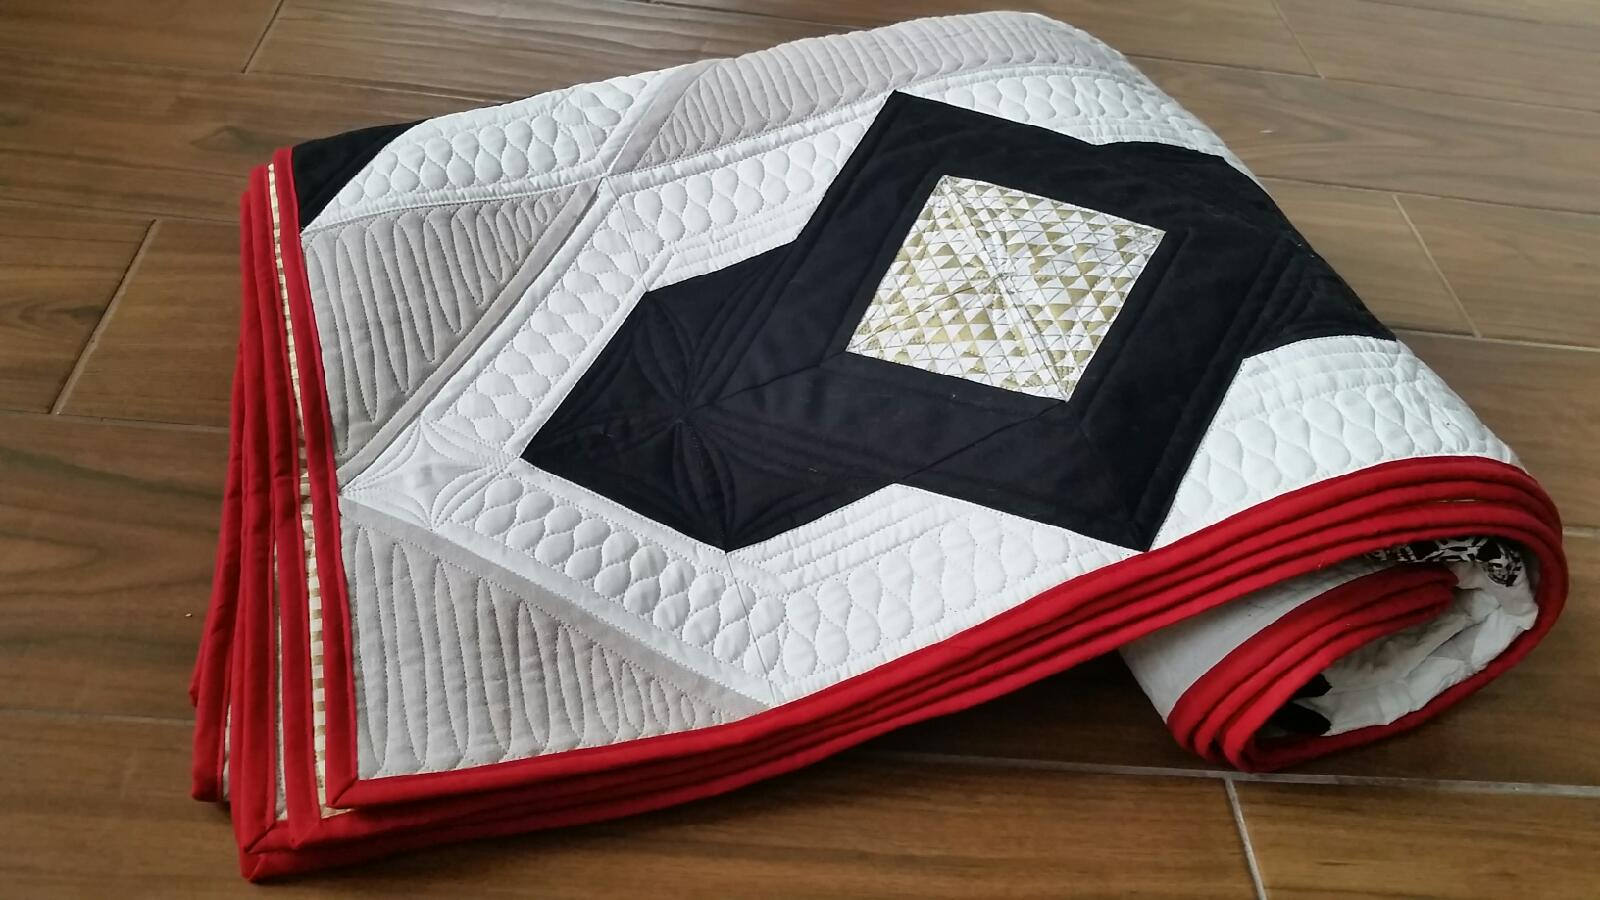 Mitzi Pieced This Amazing Quilt As A Wedding Gift For Her Cousin She Used Free Locket Pattern Featured On Fat Quarter